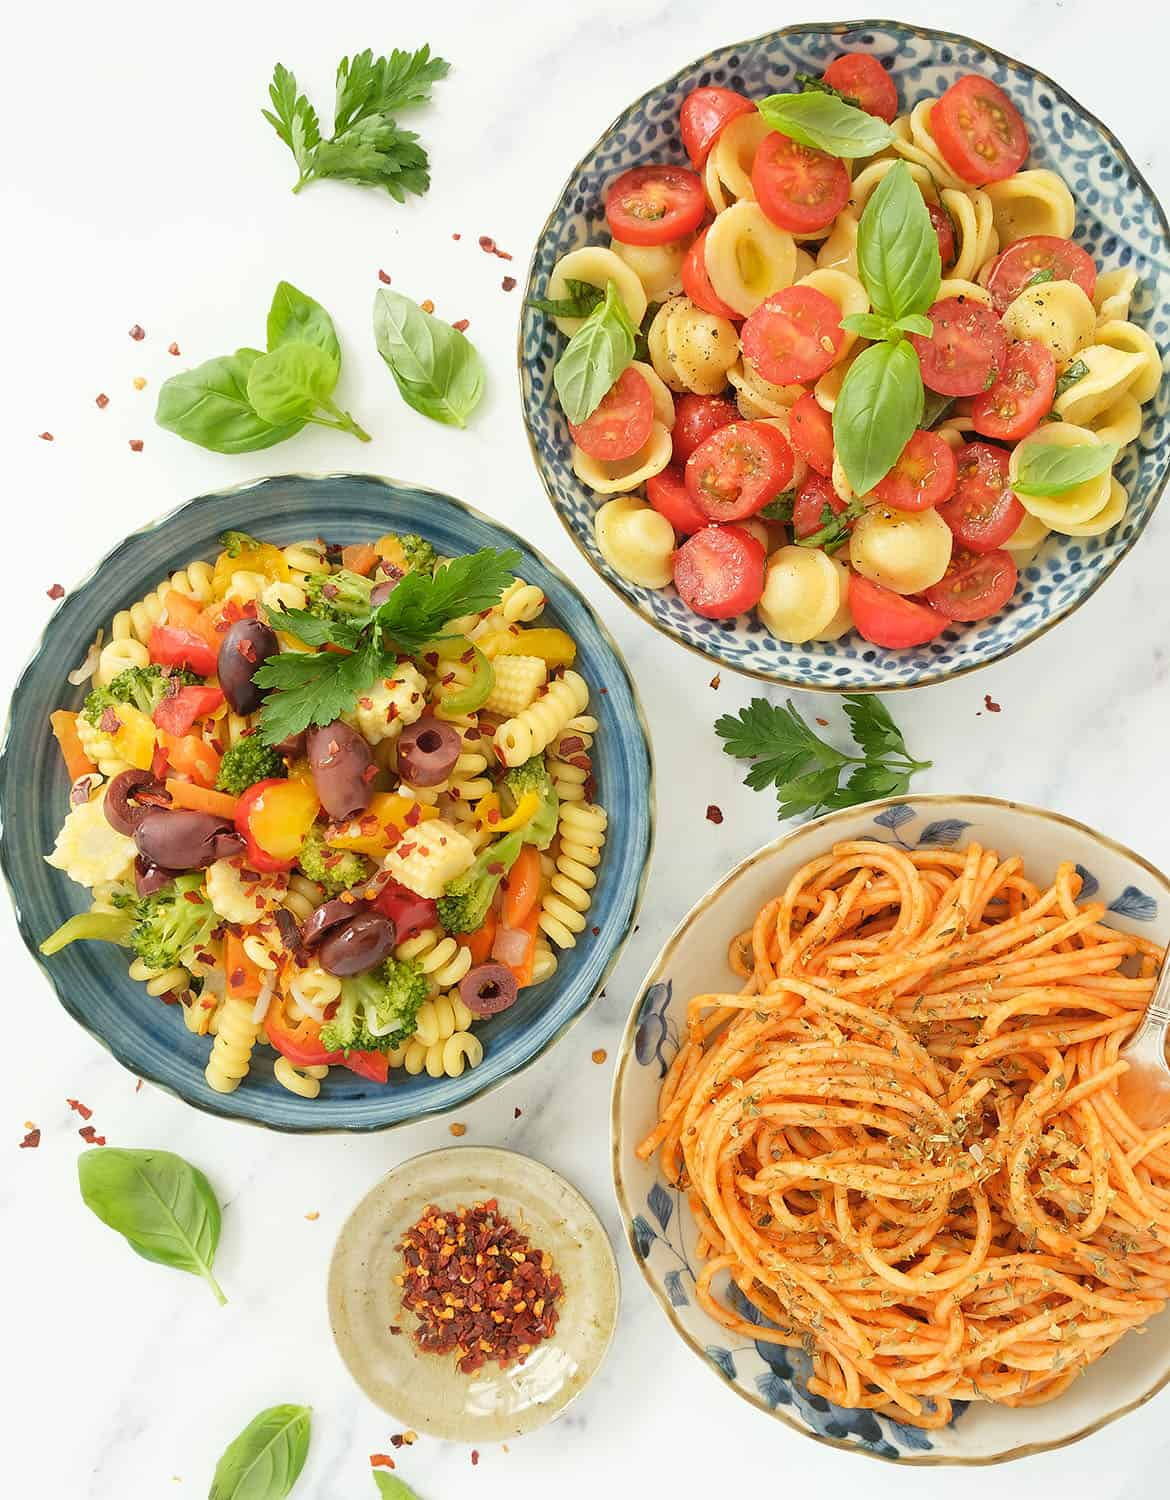 35 Amazing Vegan Pasta Recipes The Clever Meal